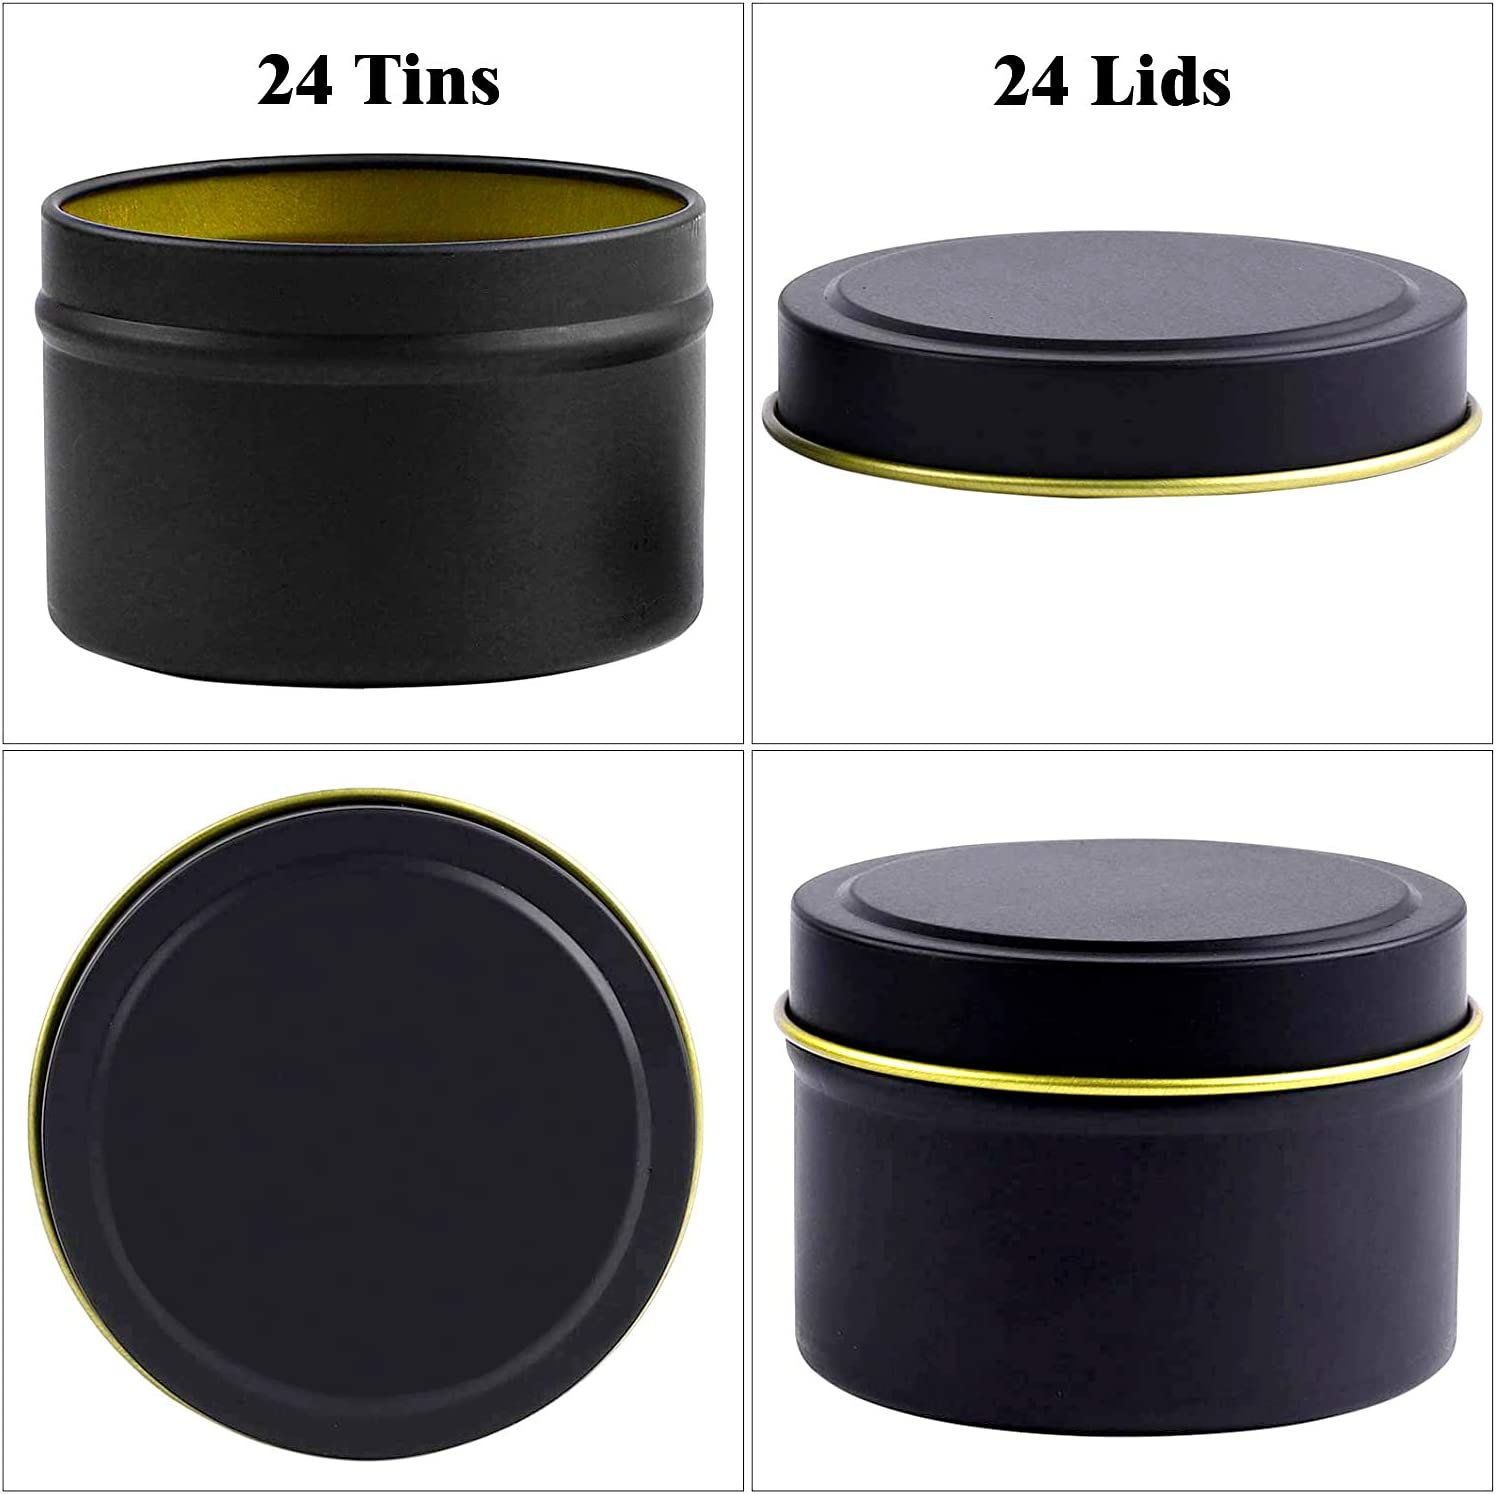 8 oz Storage /& More -Black Arts /& Crafts for Candle Making Candle tin 24 Piece